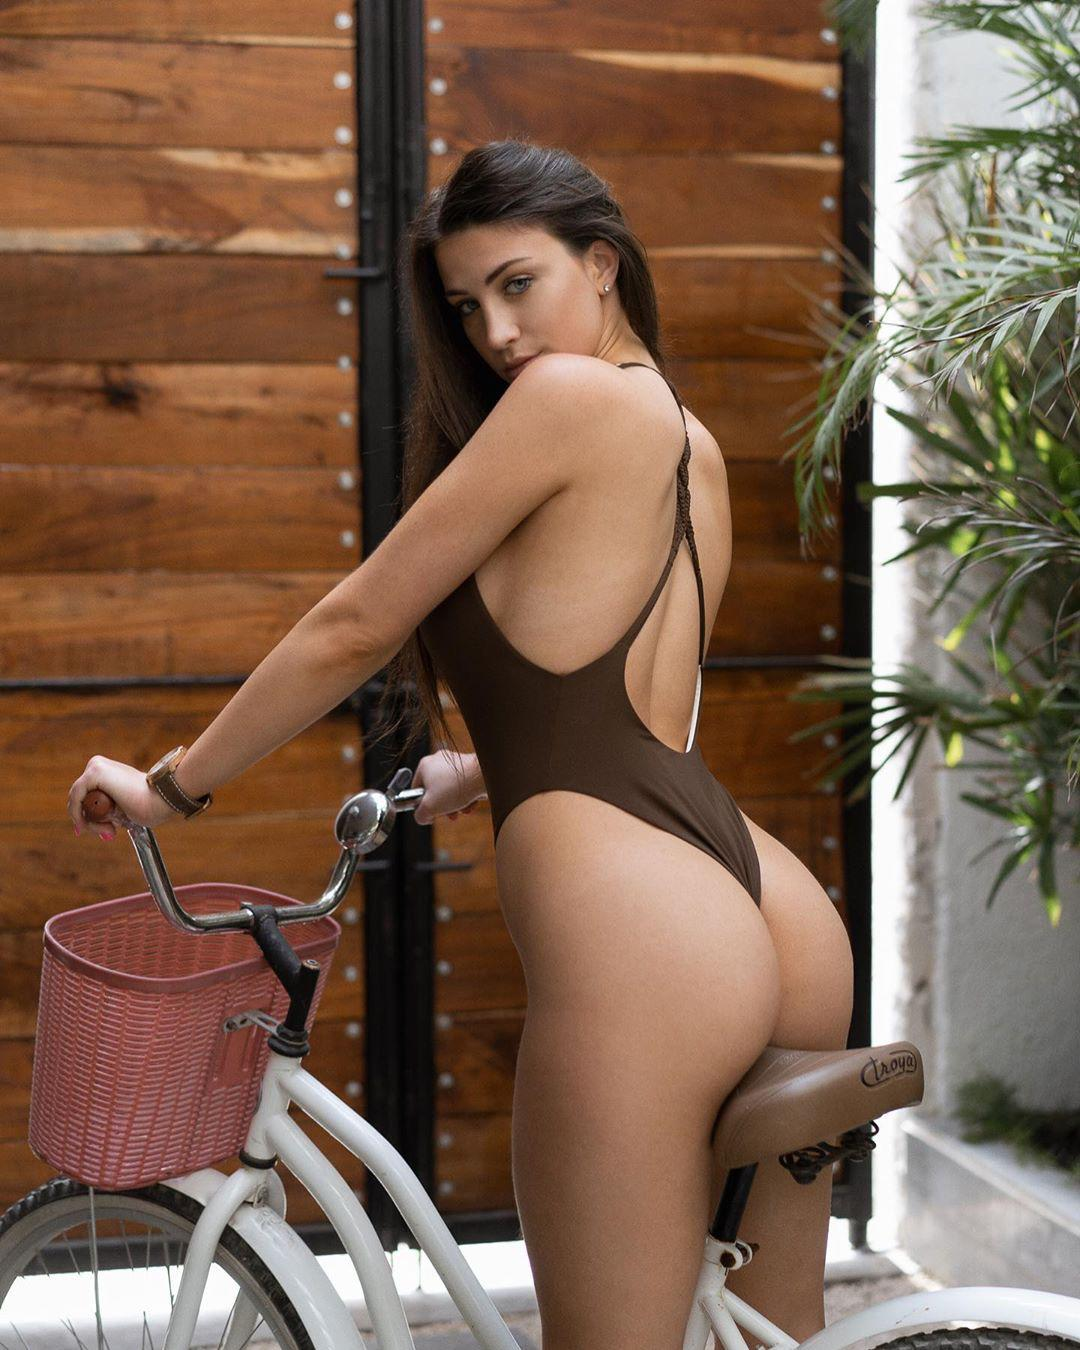 People 1080x1350 jessica bartlett women model brunette one-piece swimsuit ass looking over shoulder bicycle